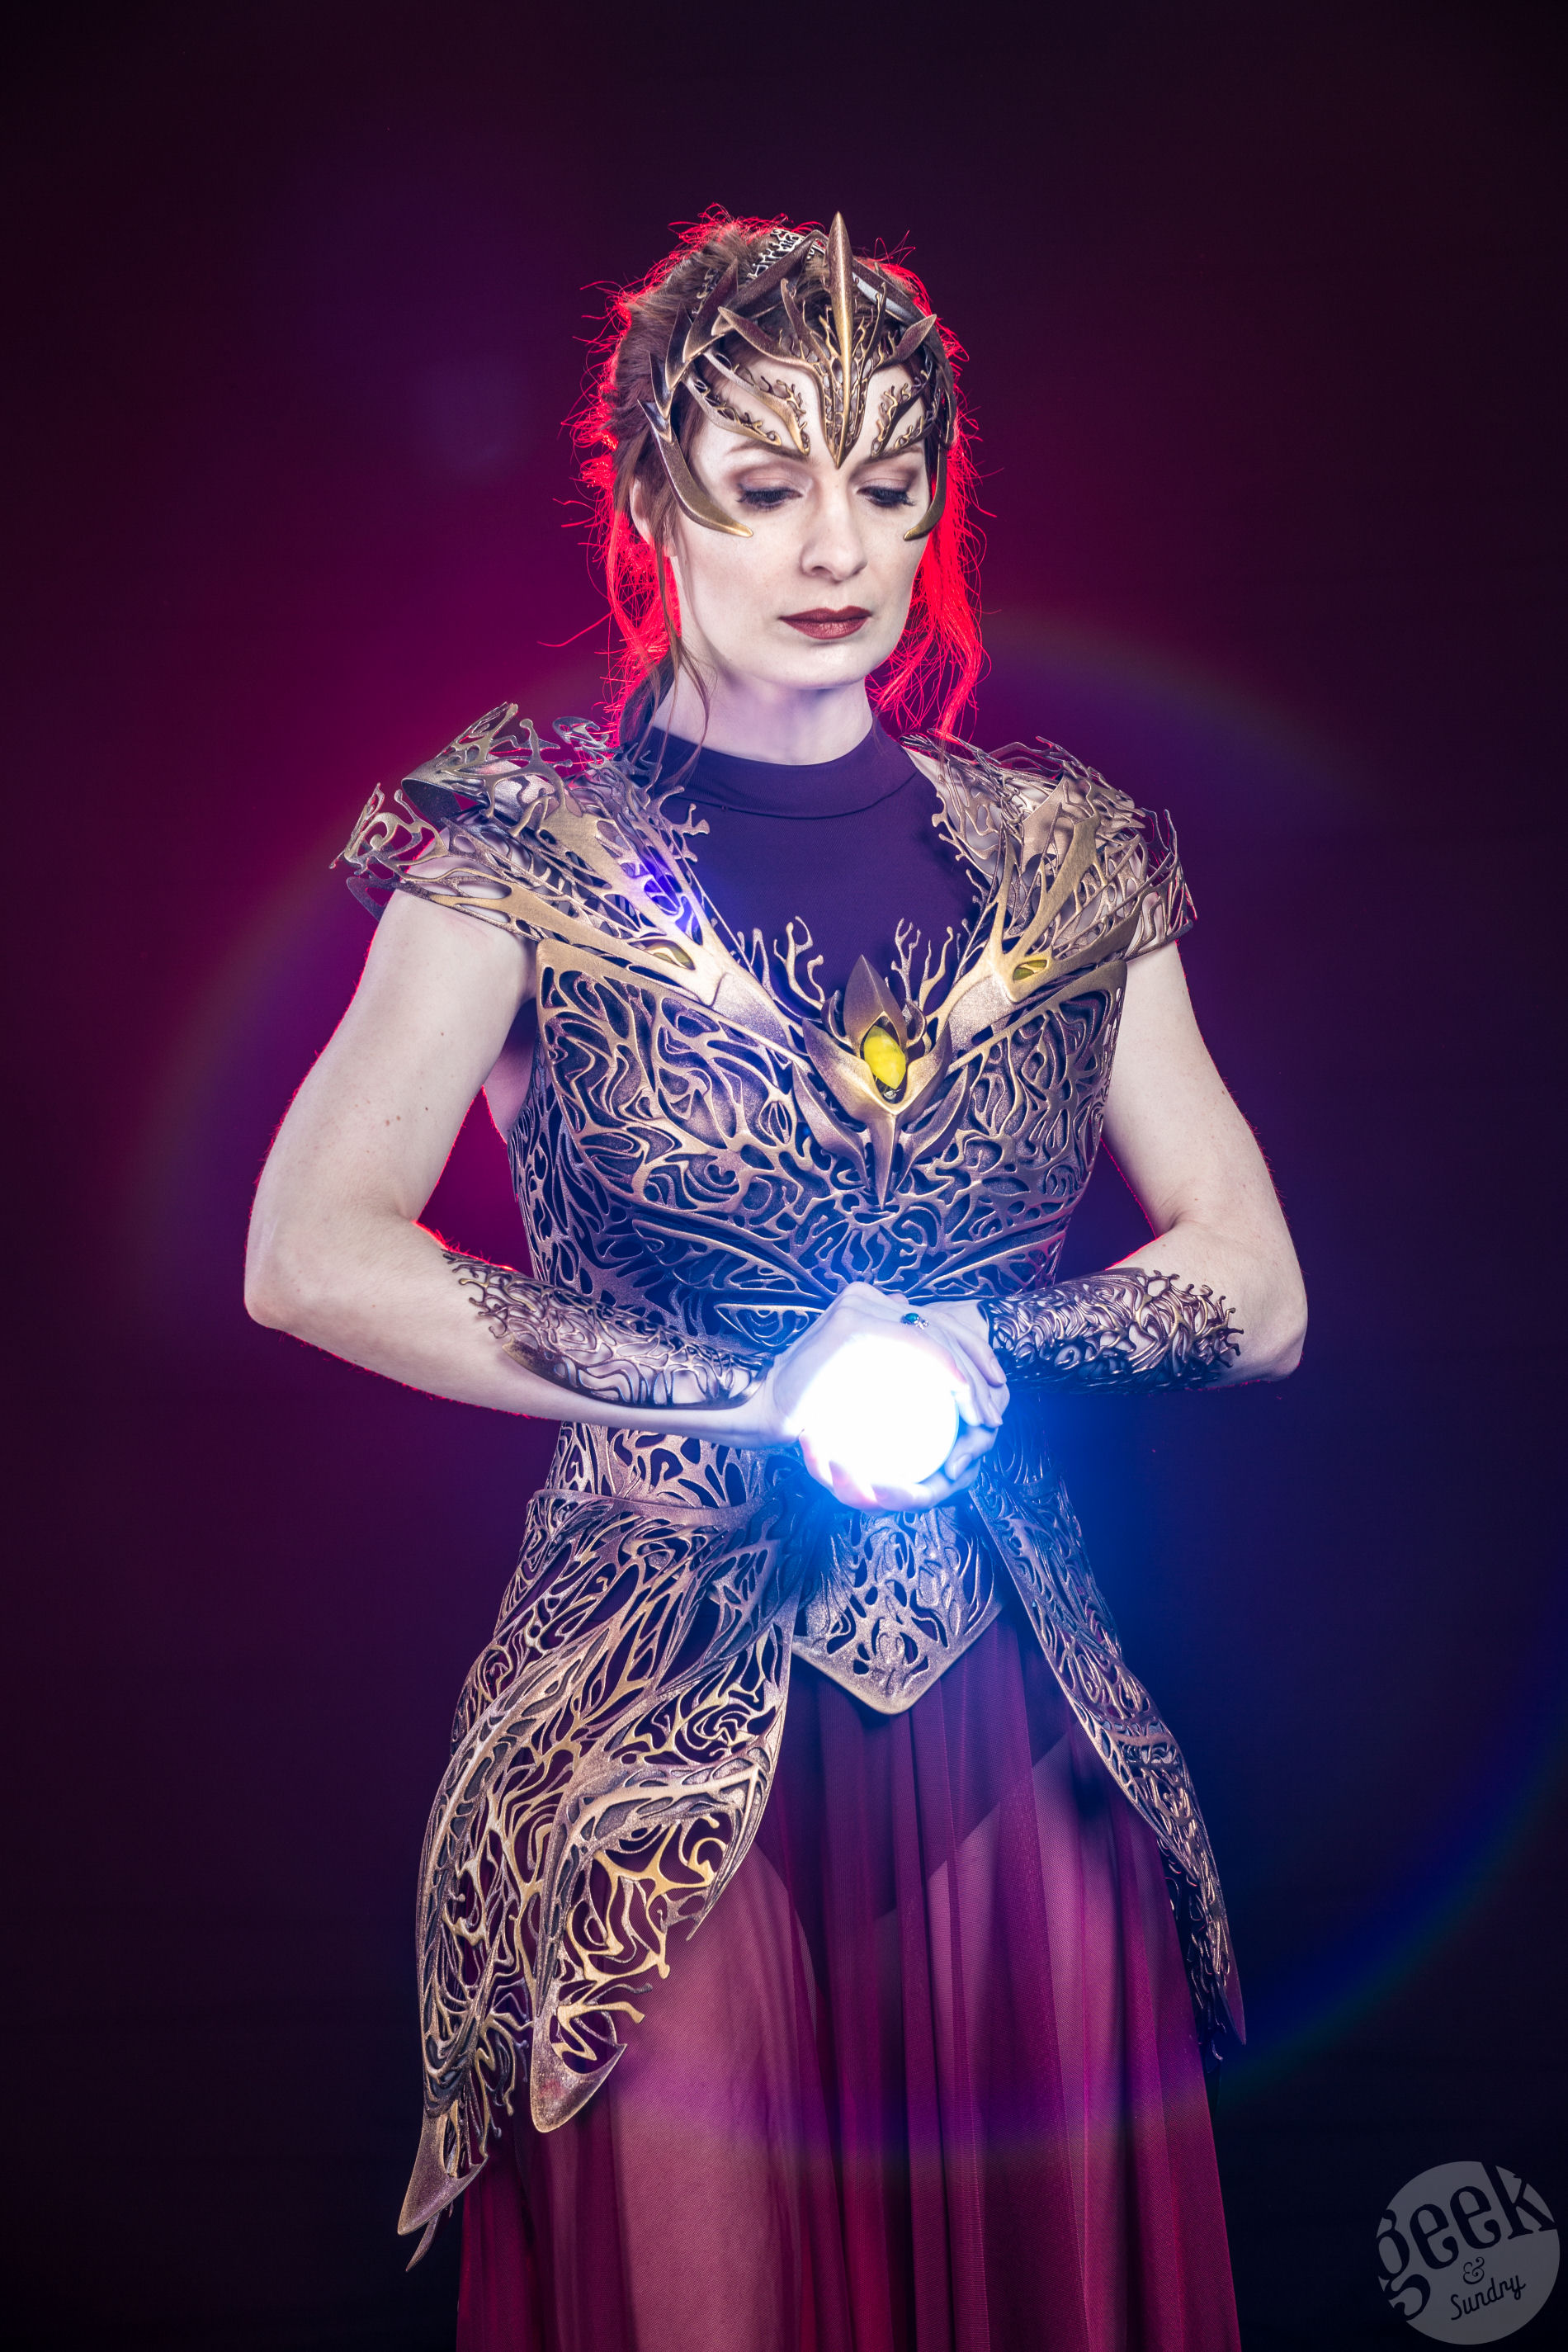 Felicia Day Models Incredible 3D-Printed Elven Dream Goddess